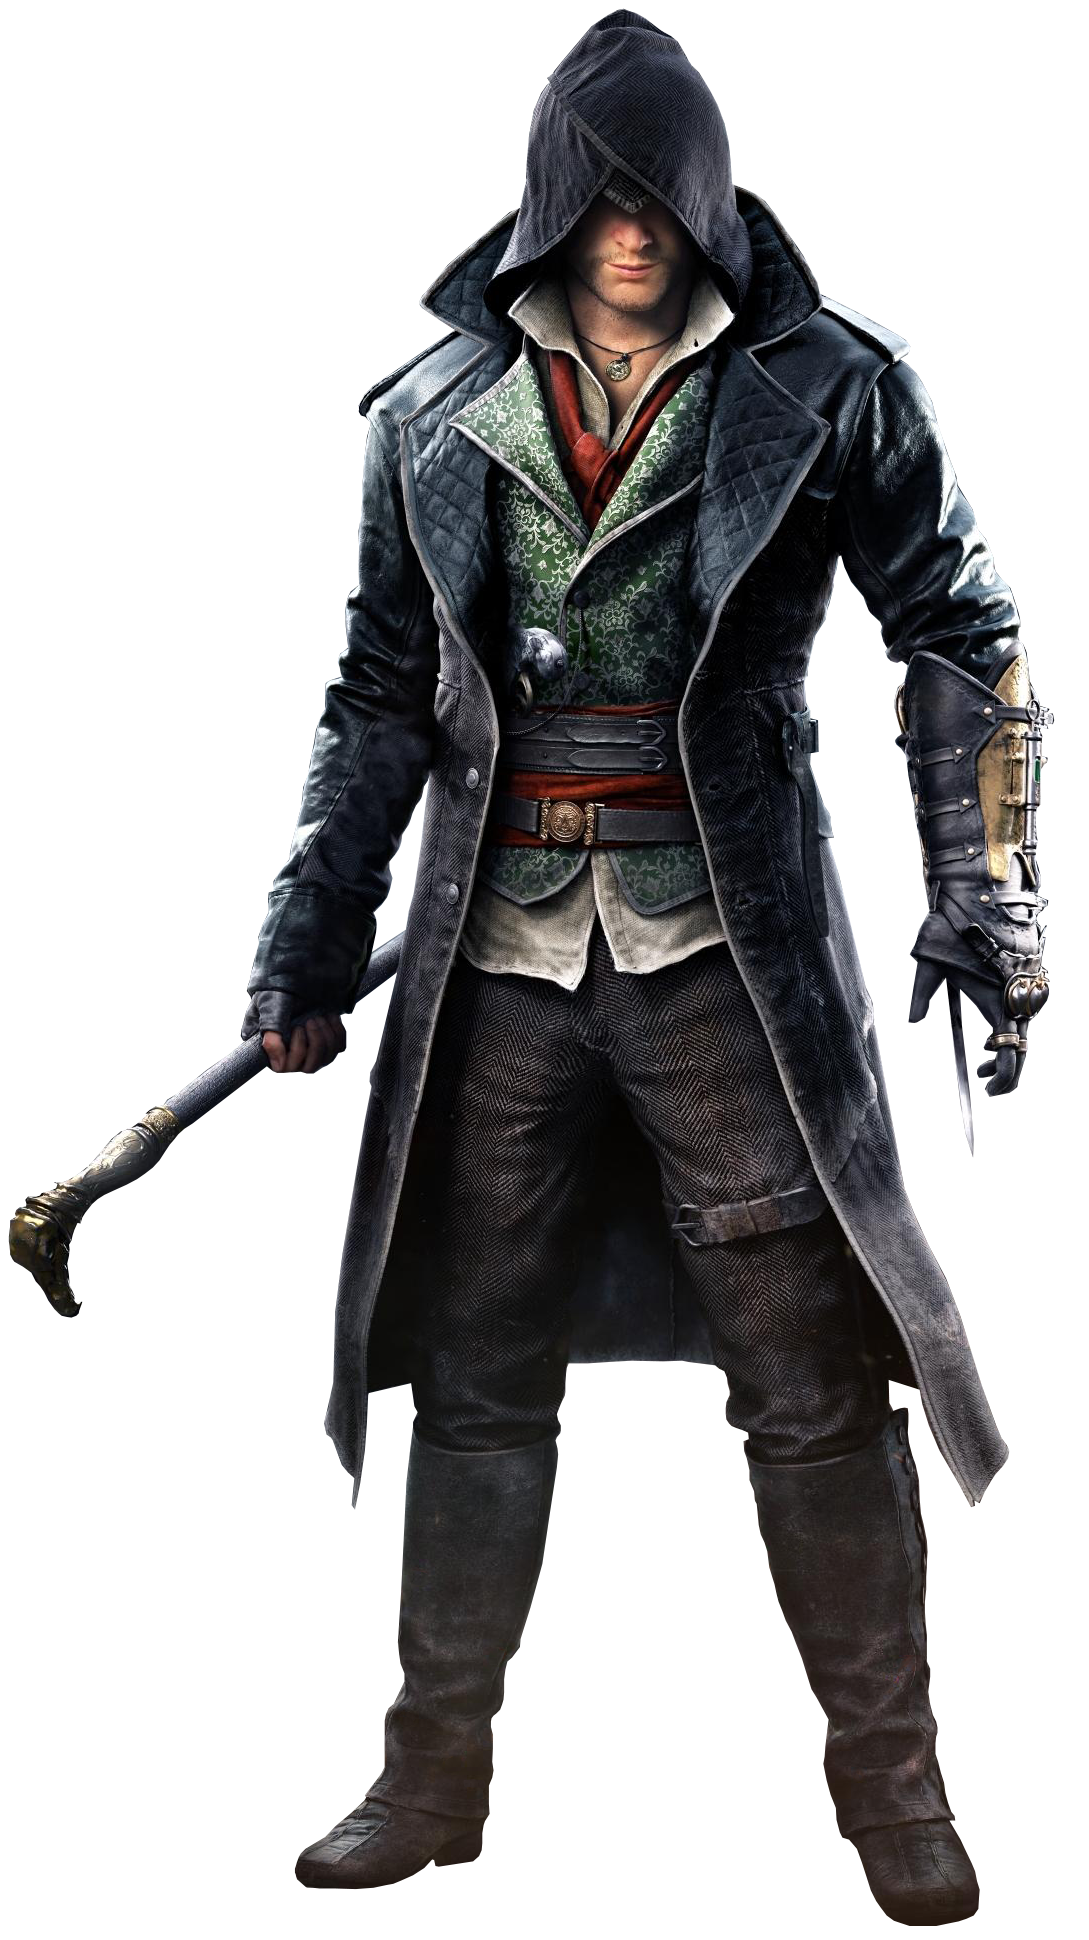 Jacob Frye | Assassin's Creed Wiki | FANDOM powered by Wikia